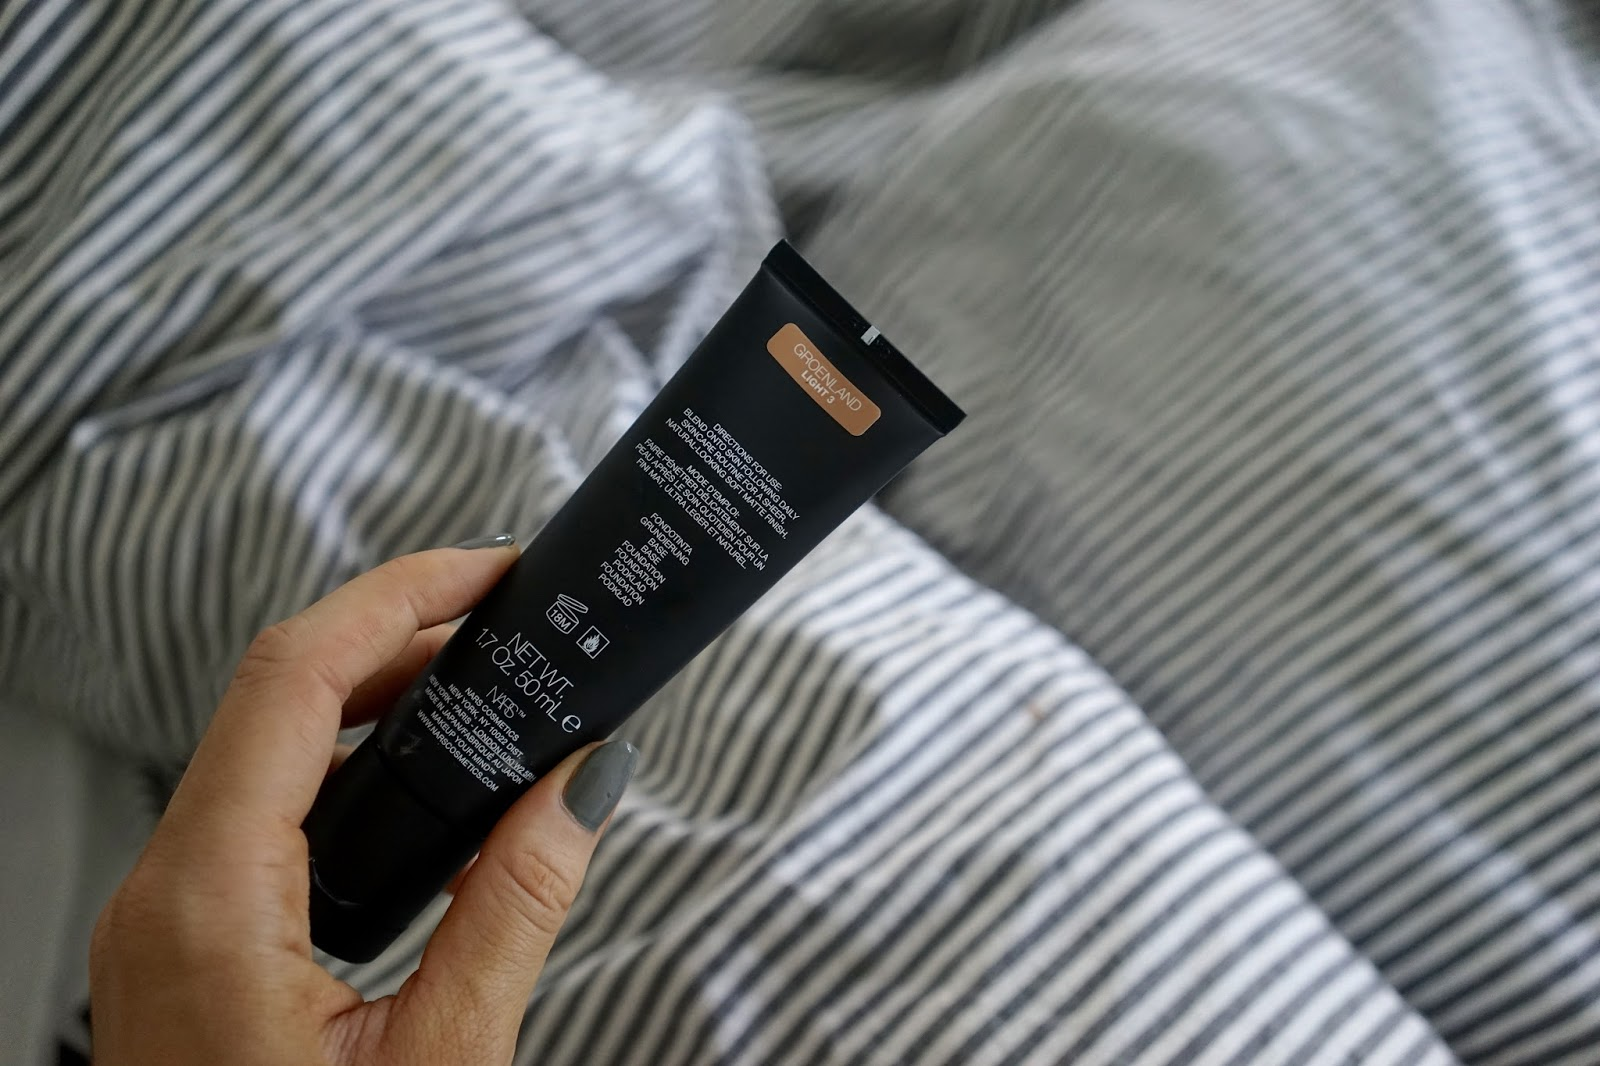 Nars Velvet Matte Skin Tint Foundation review